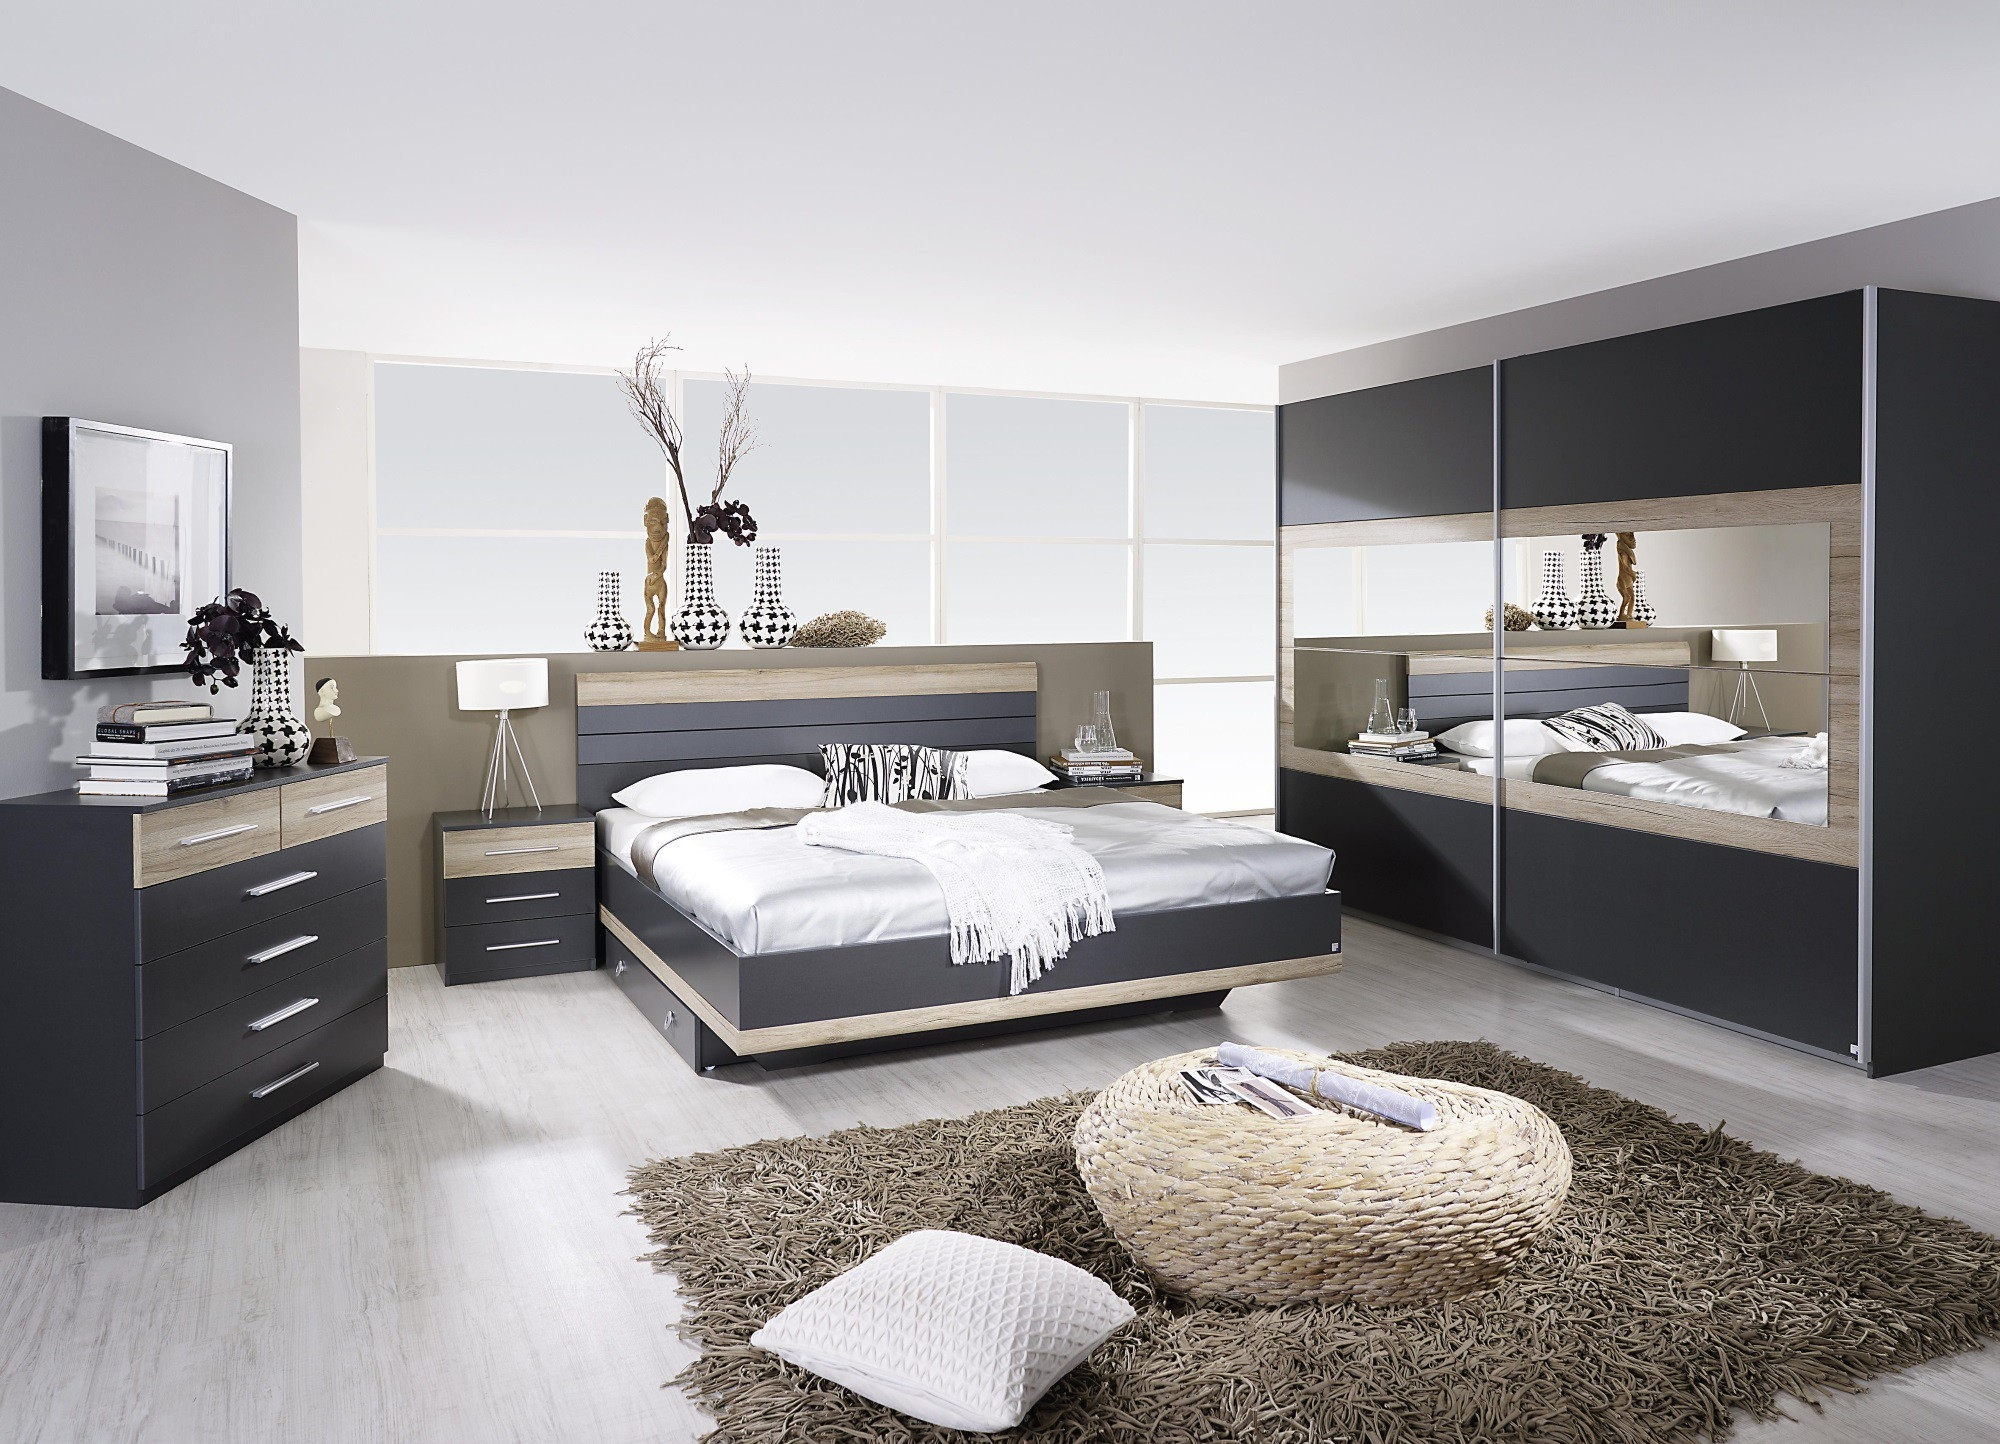 Chambre adulte compl te contemporaine gris ch ne clair - Papier peint chambre adulte contemporaine ...